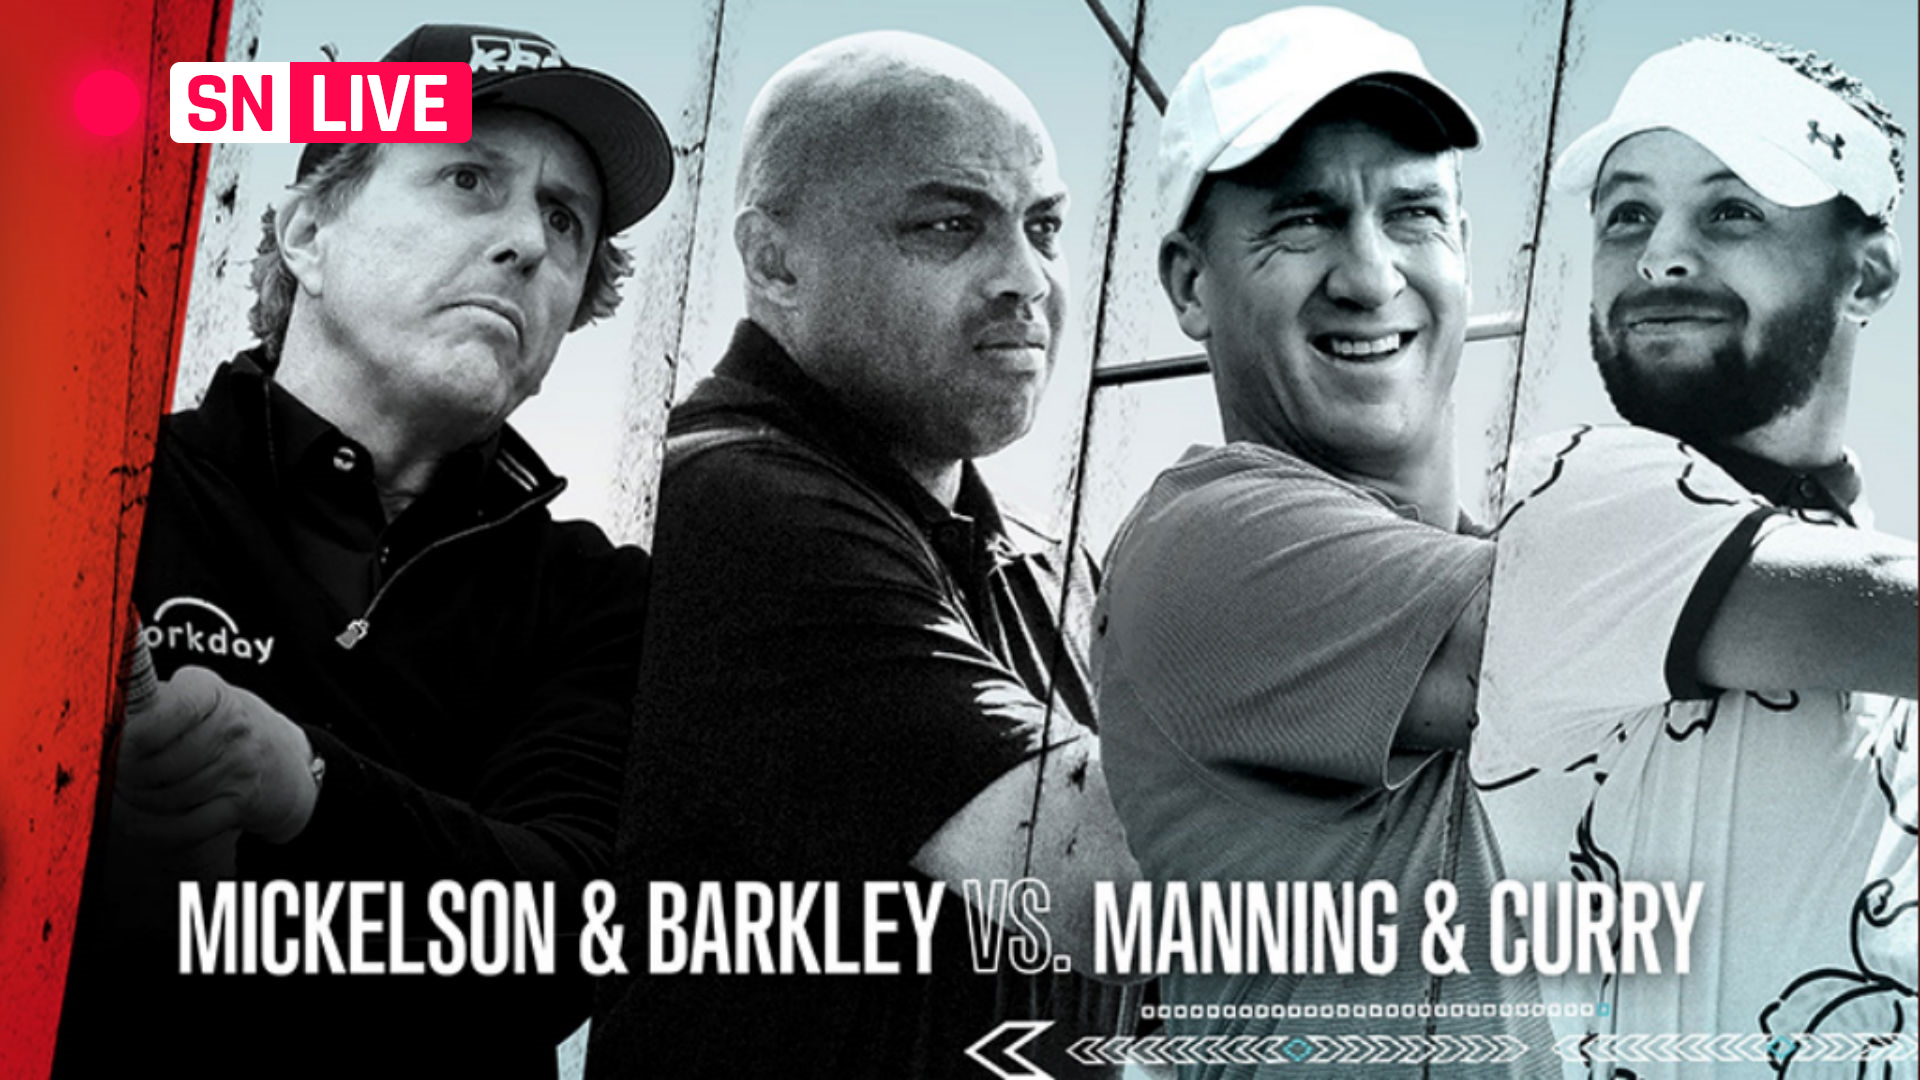 The Match 3 results: Charles Barkley shockingly OK, Phil Mickelson dominant in win over Peyton Manning, Stephen Curry